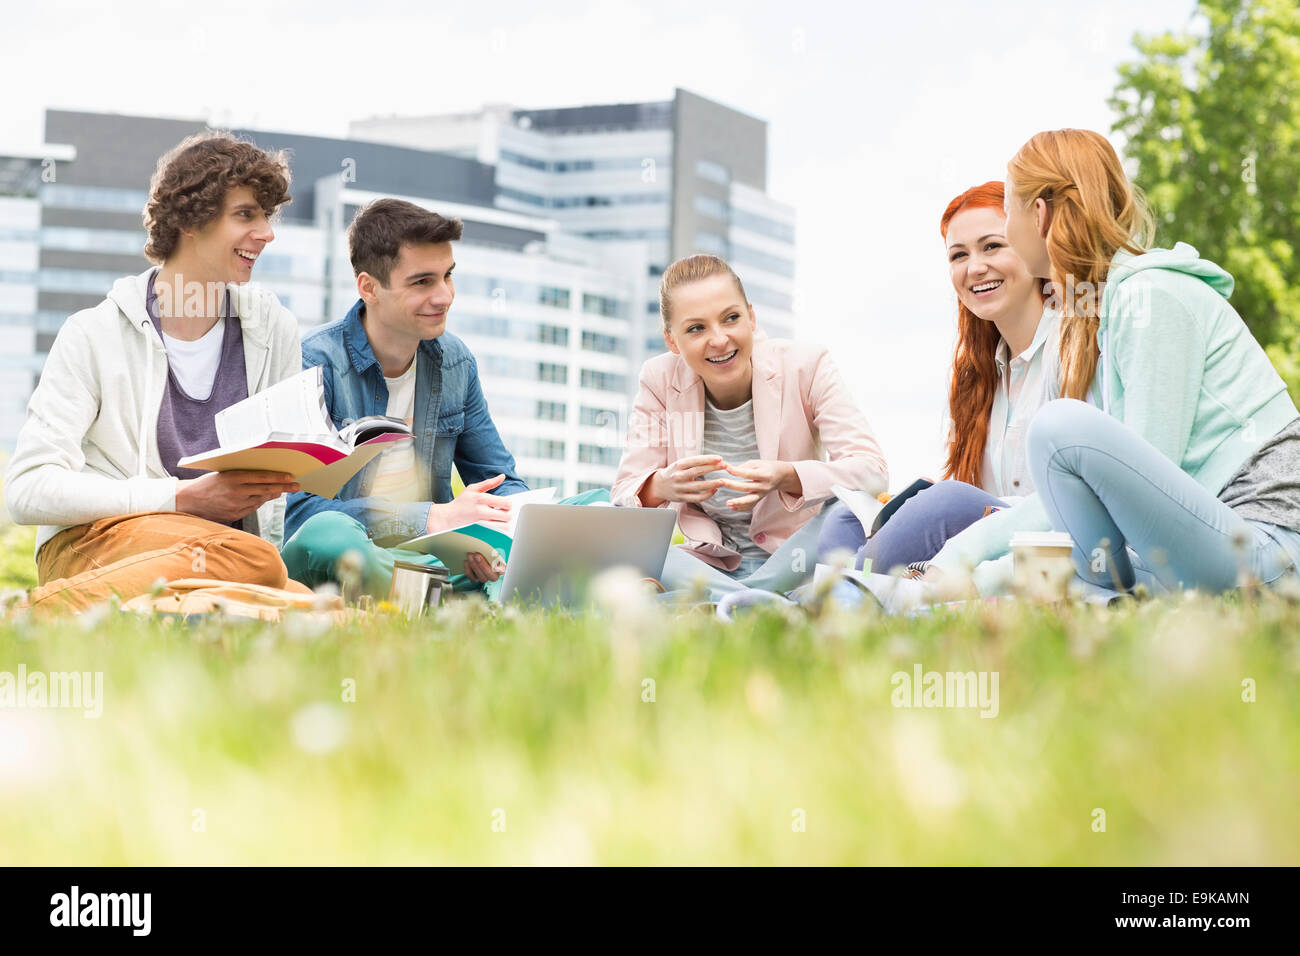 University students studying together on grass - Stock Image